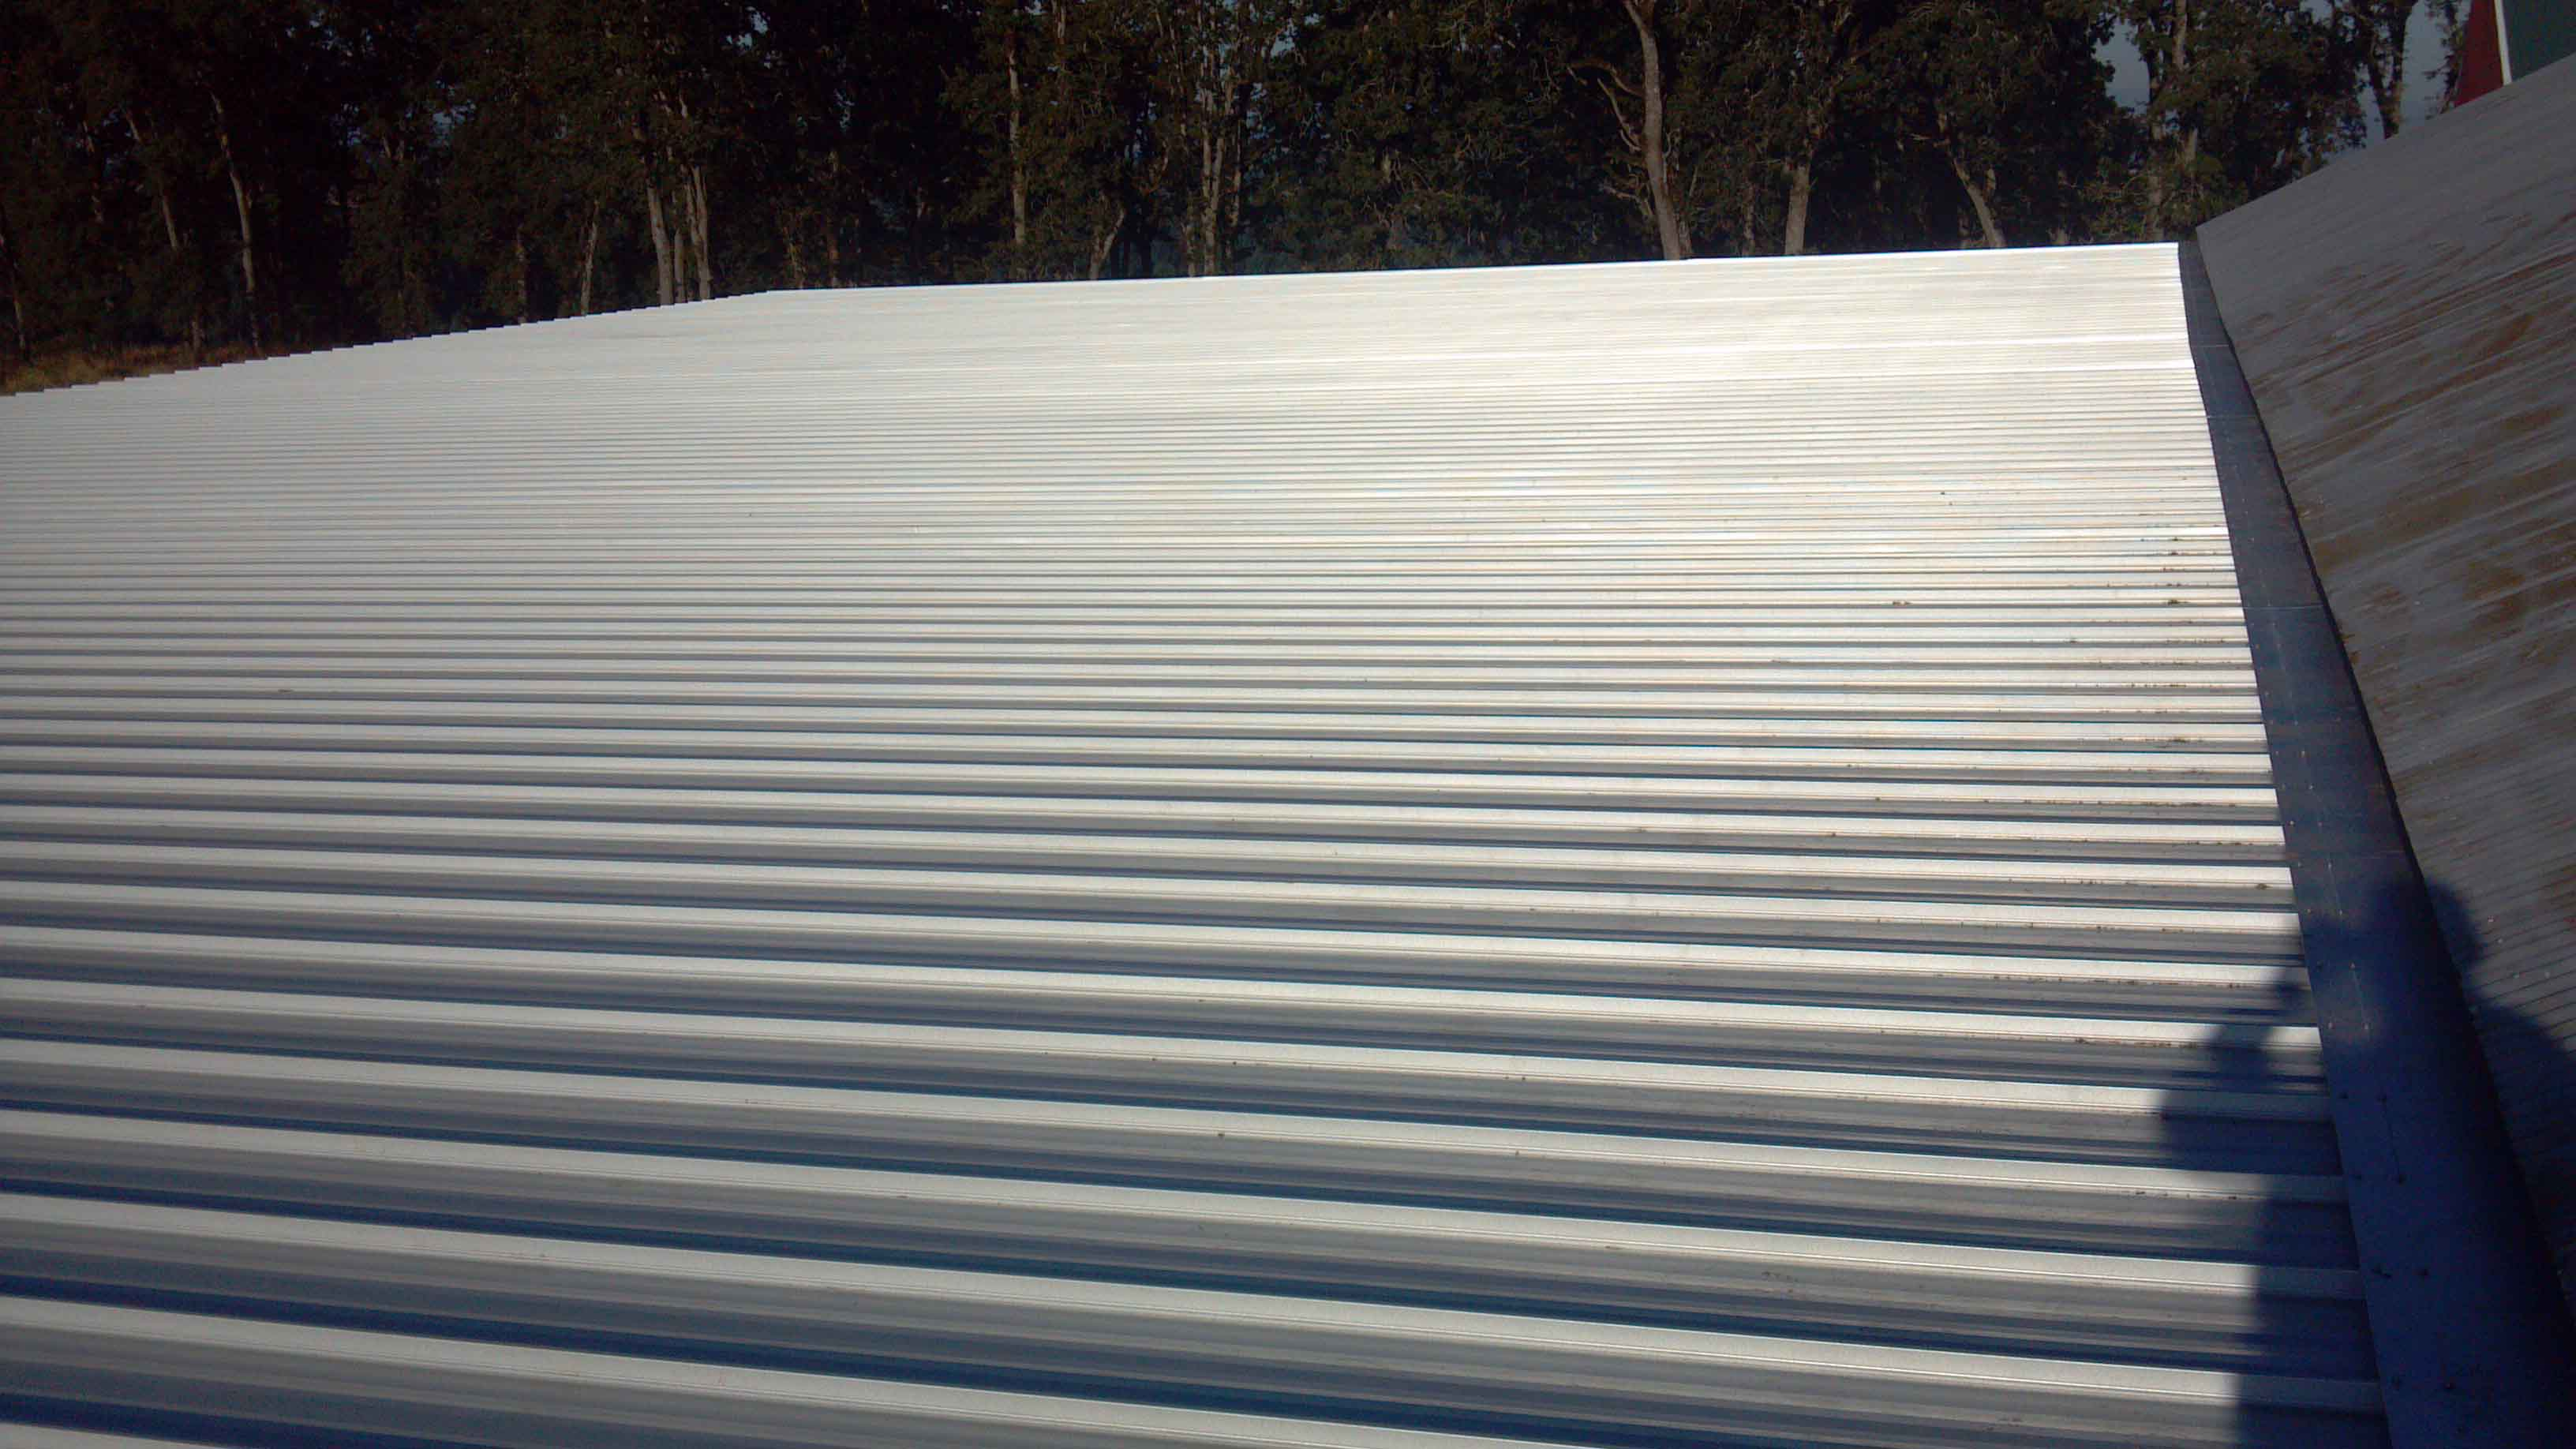 Clip-Loc Metal Roofing